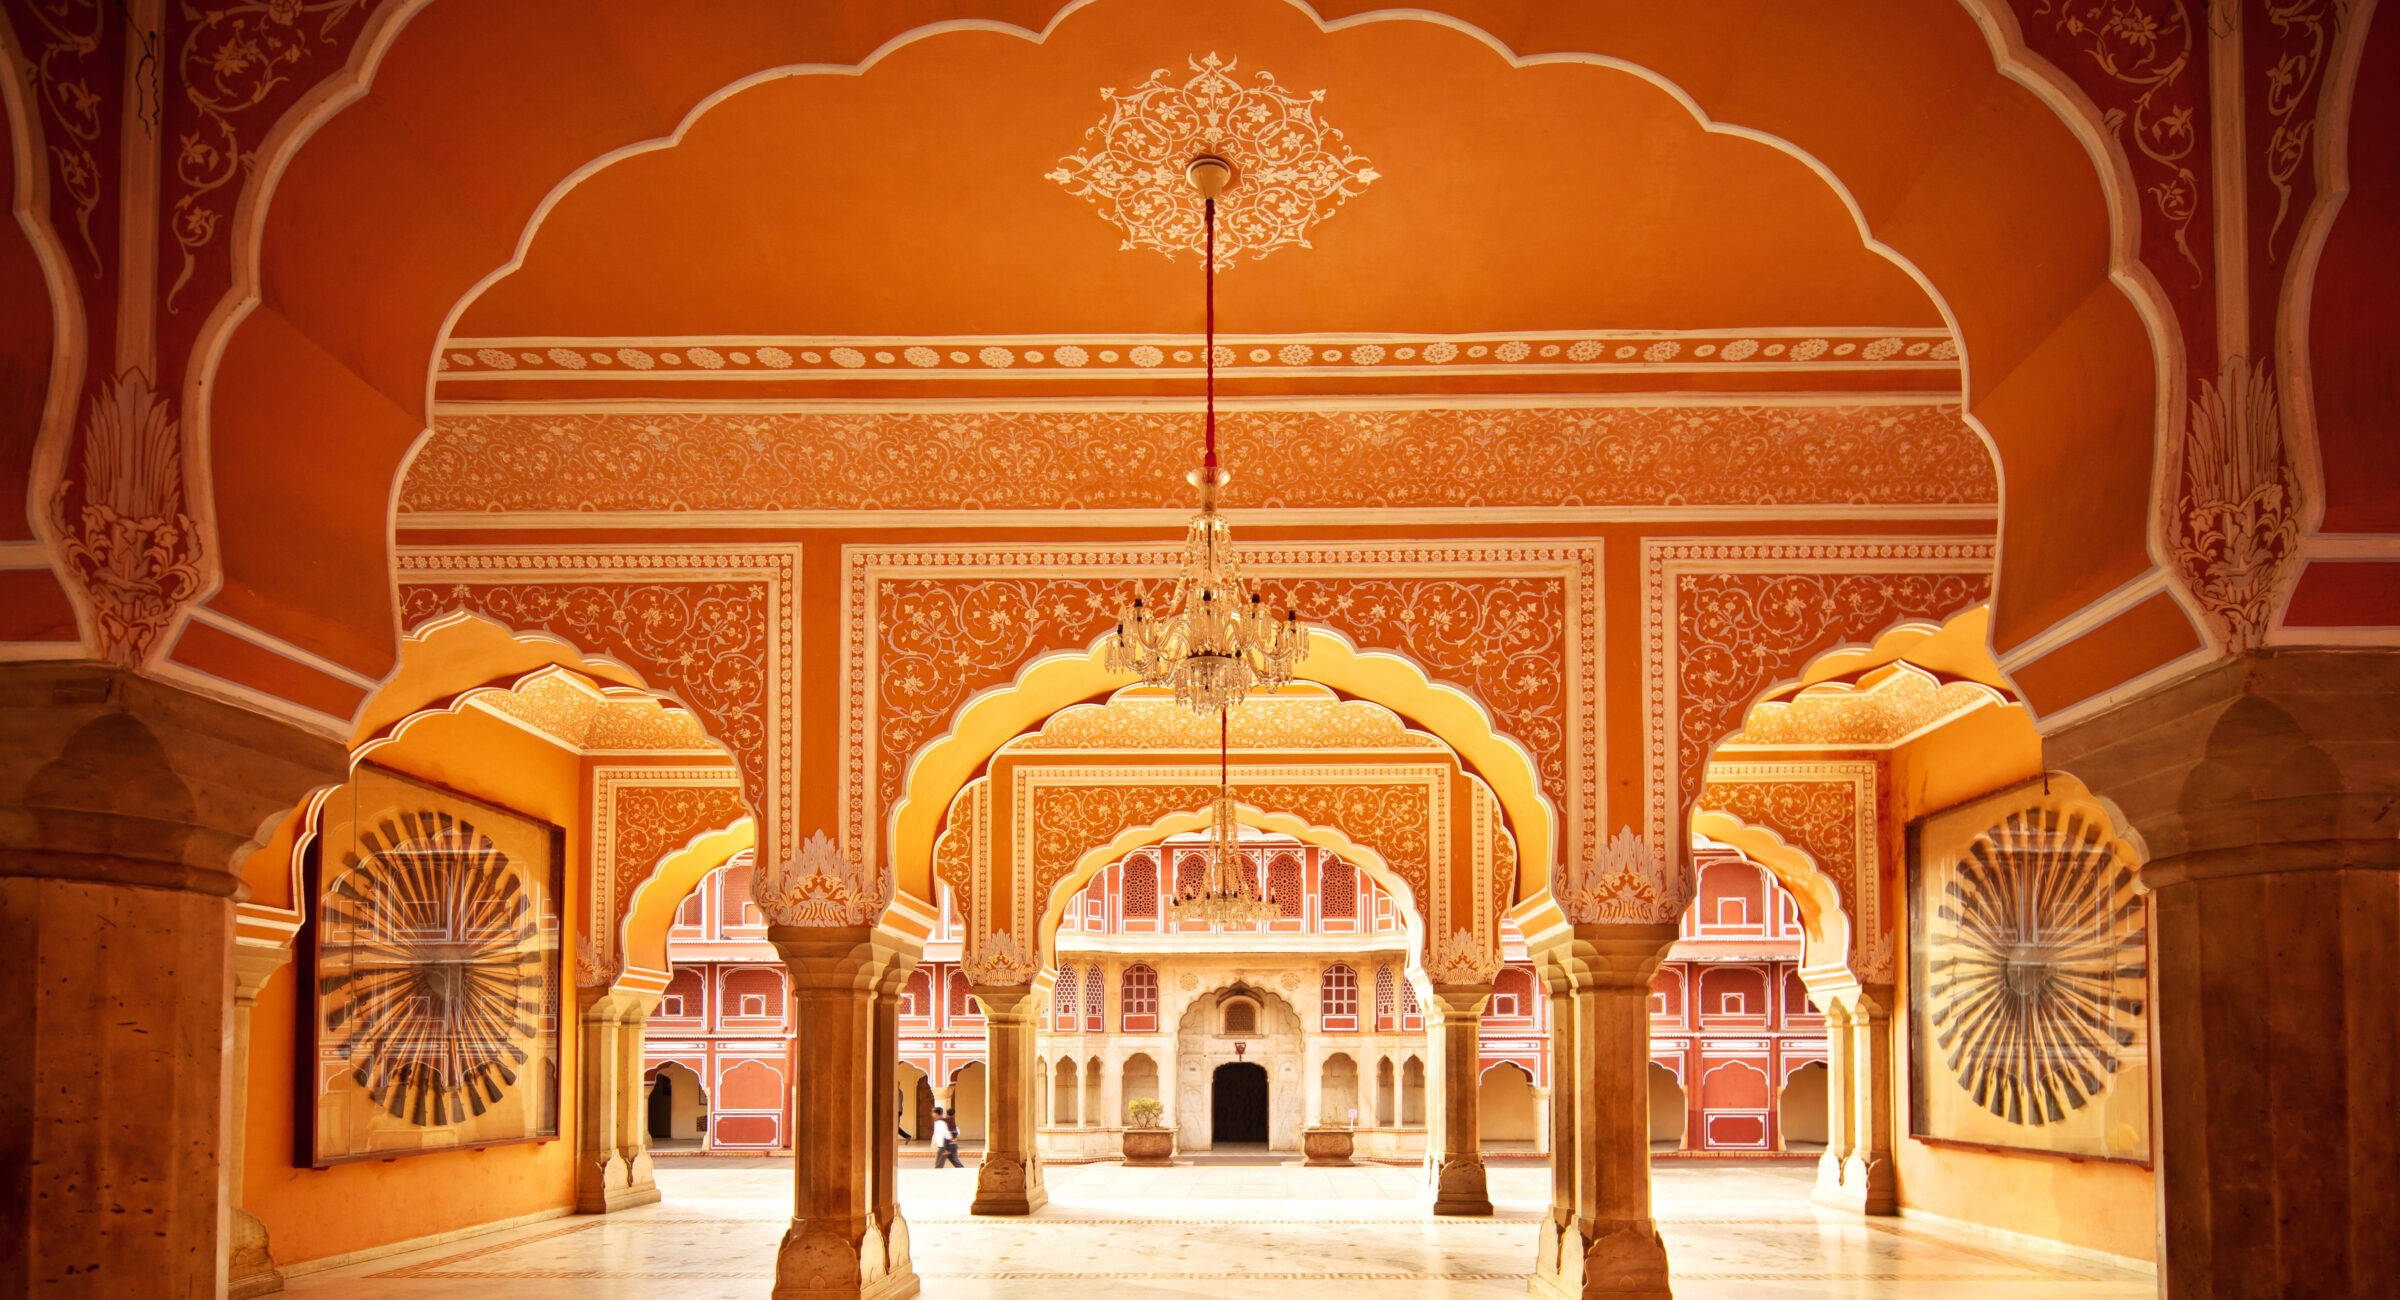 City Palace Museum, Jaipur, Rajasthan, India